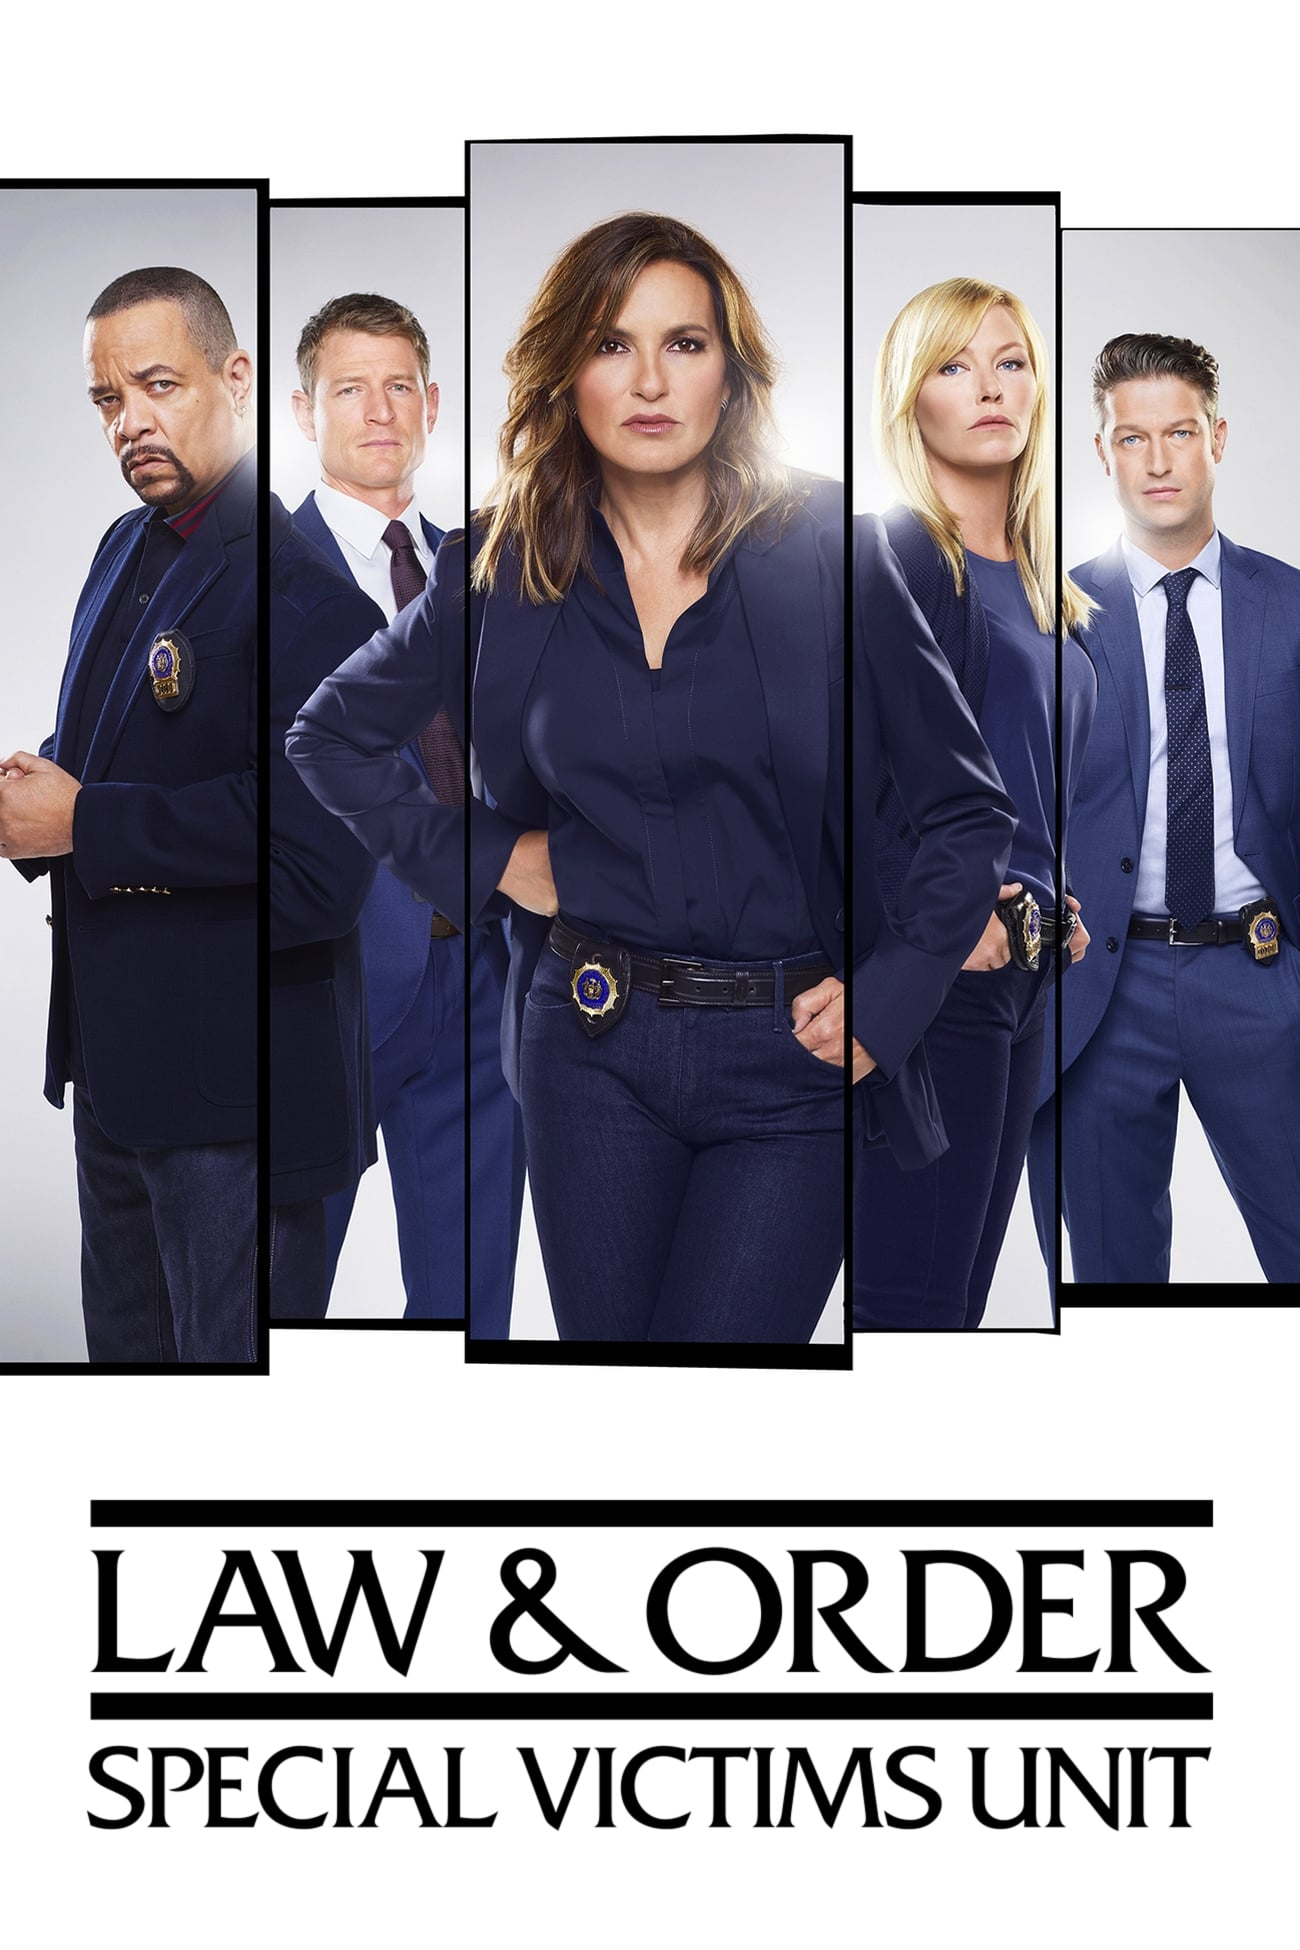 Law & Order: Special Victims Unit (1999)